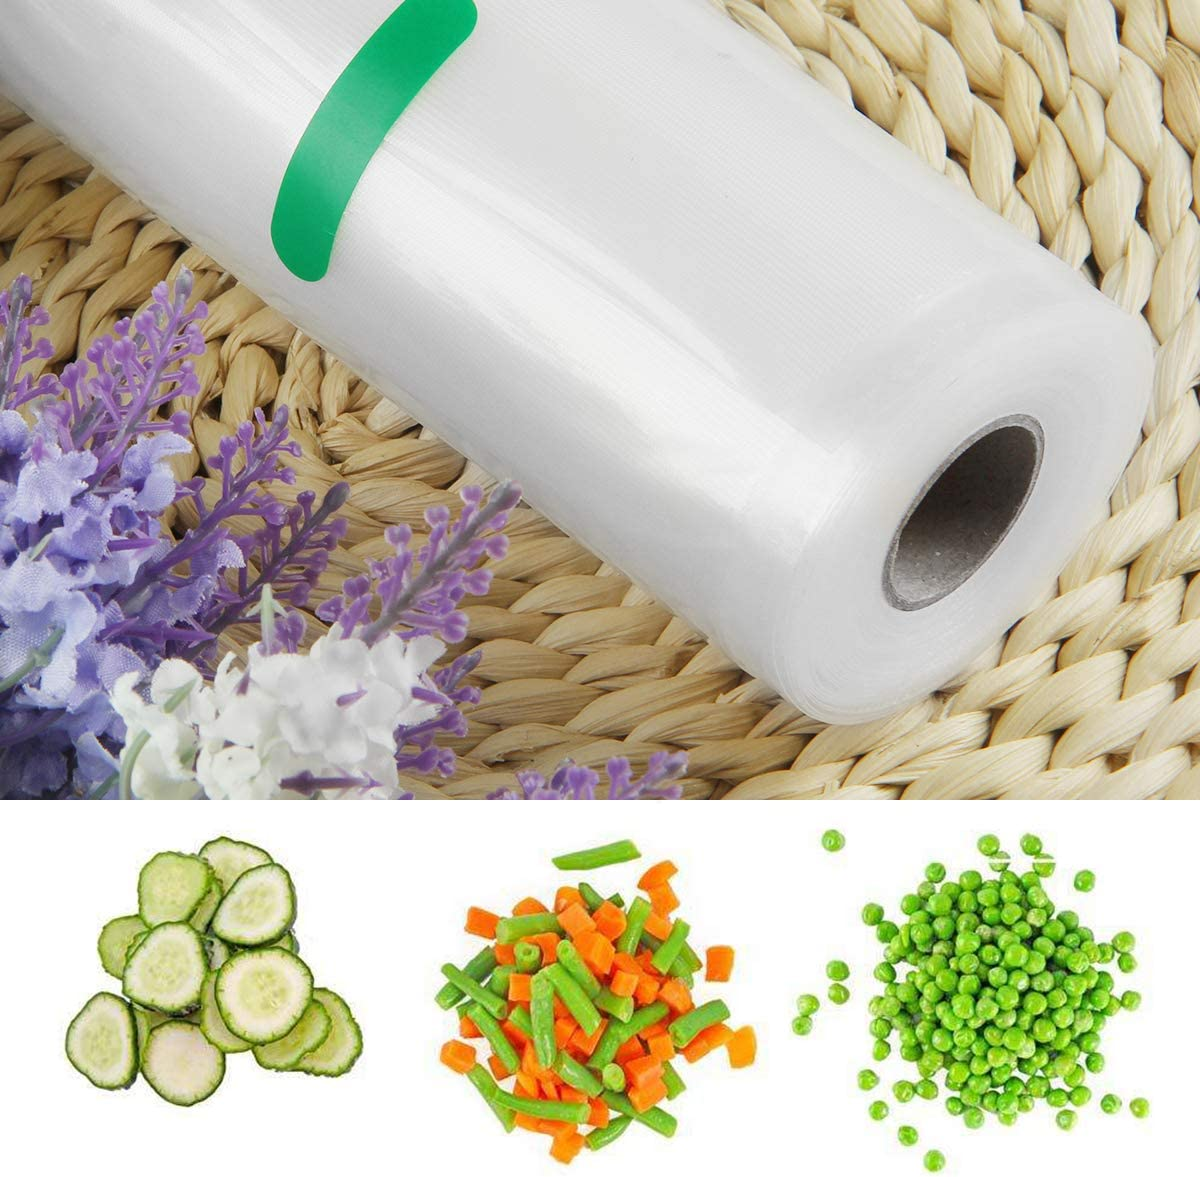 Yinuoday Sealer Bags Rolls Vacuum Varisized Reusable Food grade Storage Bags Heavy Duty Works with Food Saver Vacuum Sealer and Sous Vide Cooking(28x500cm) 20*500cm